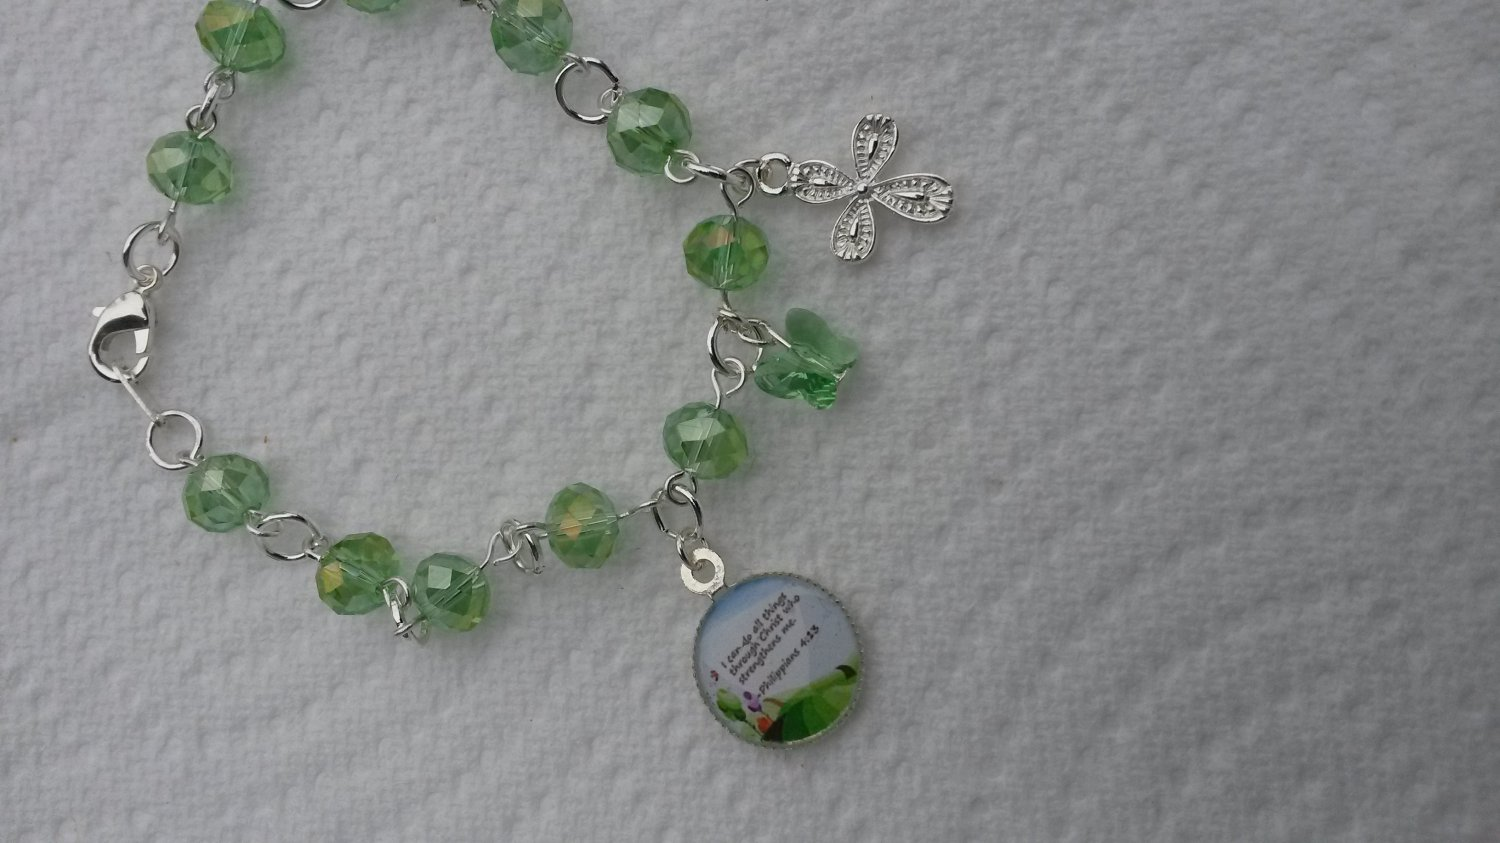 A lovely Bible verse bracelet made with stunning peridot green Czech glass and heavy gauge findings.